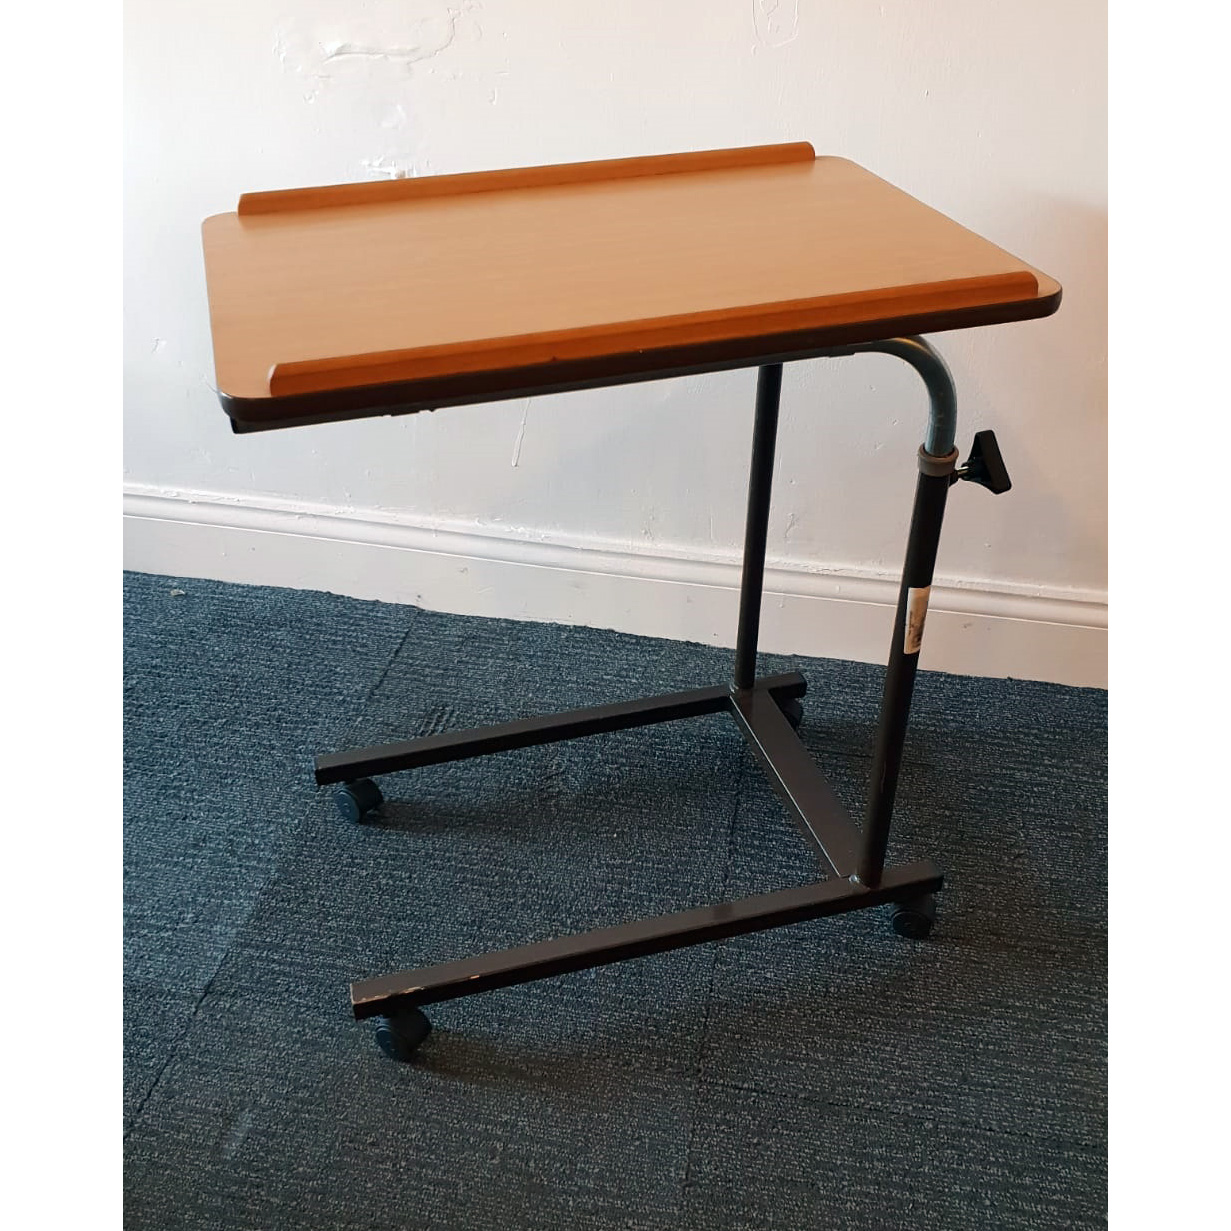 s_2018_11_03-wheeled-table